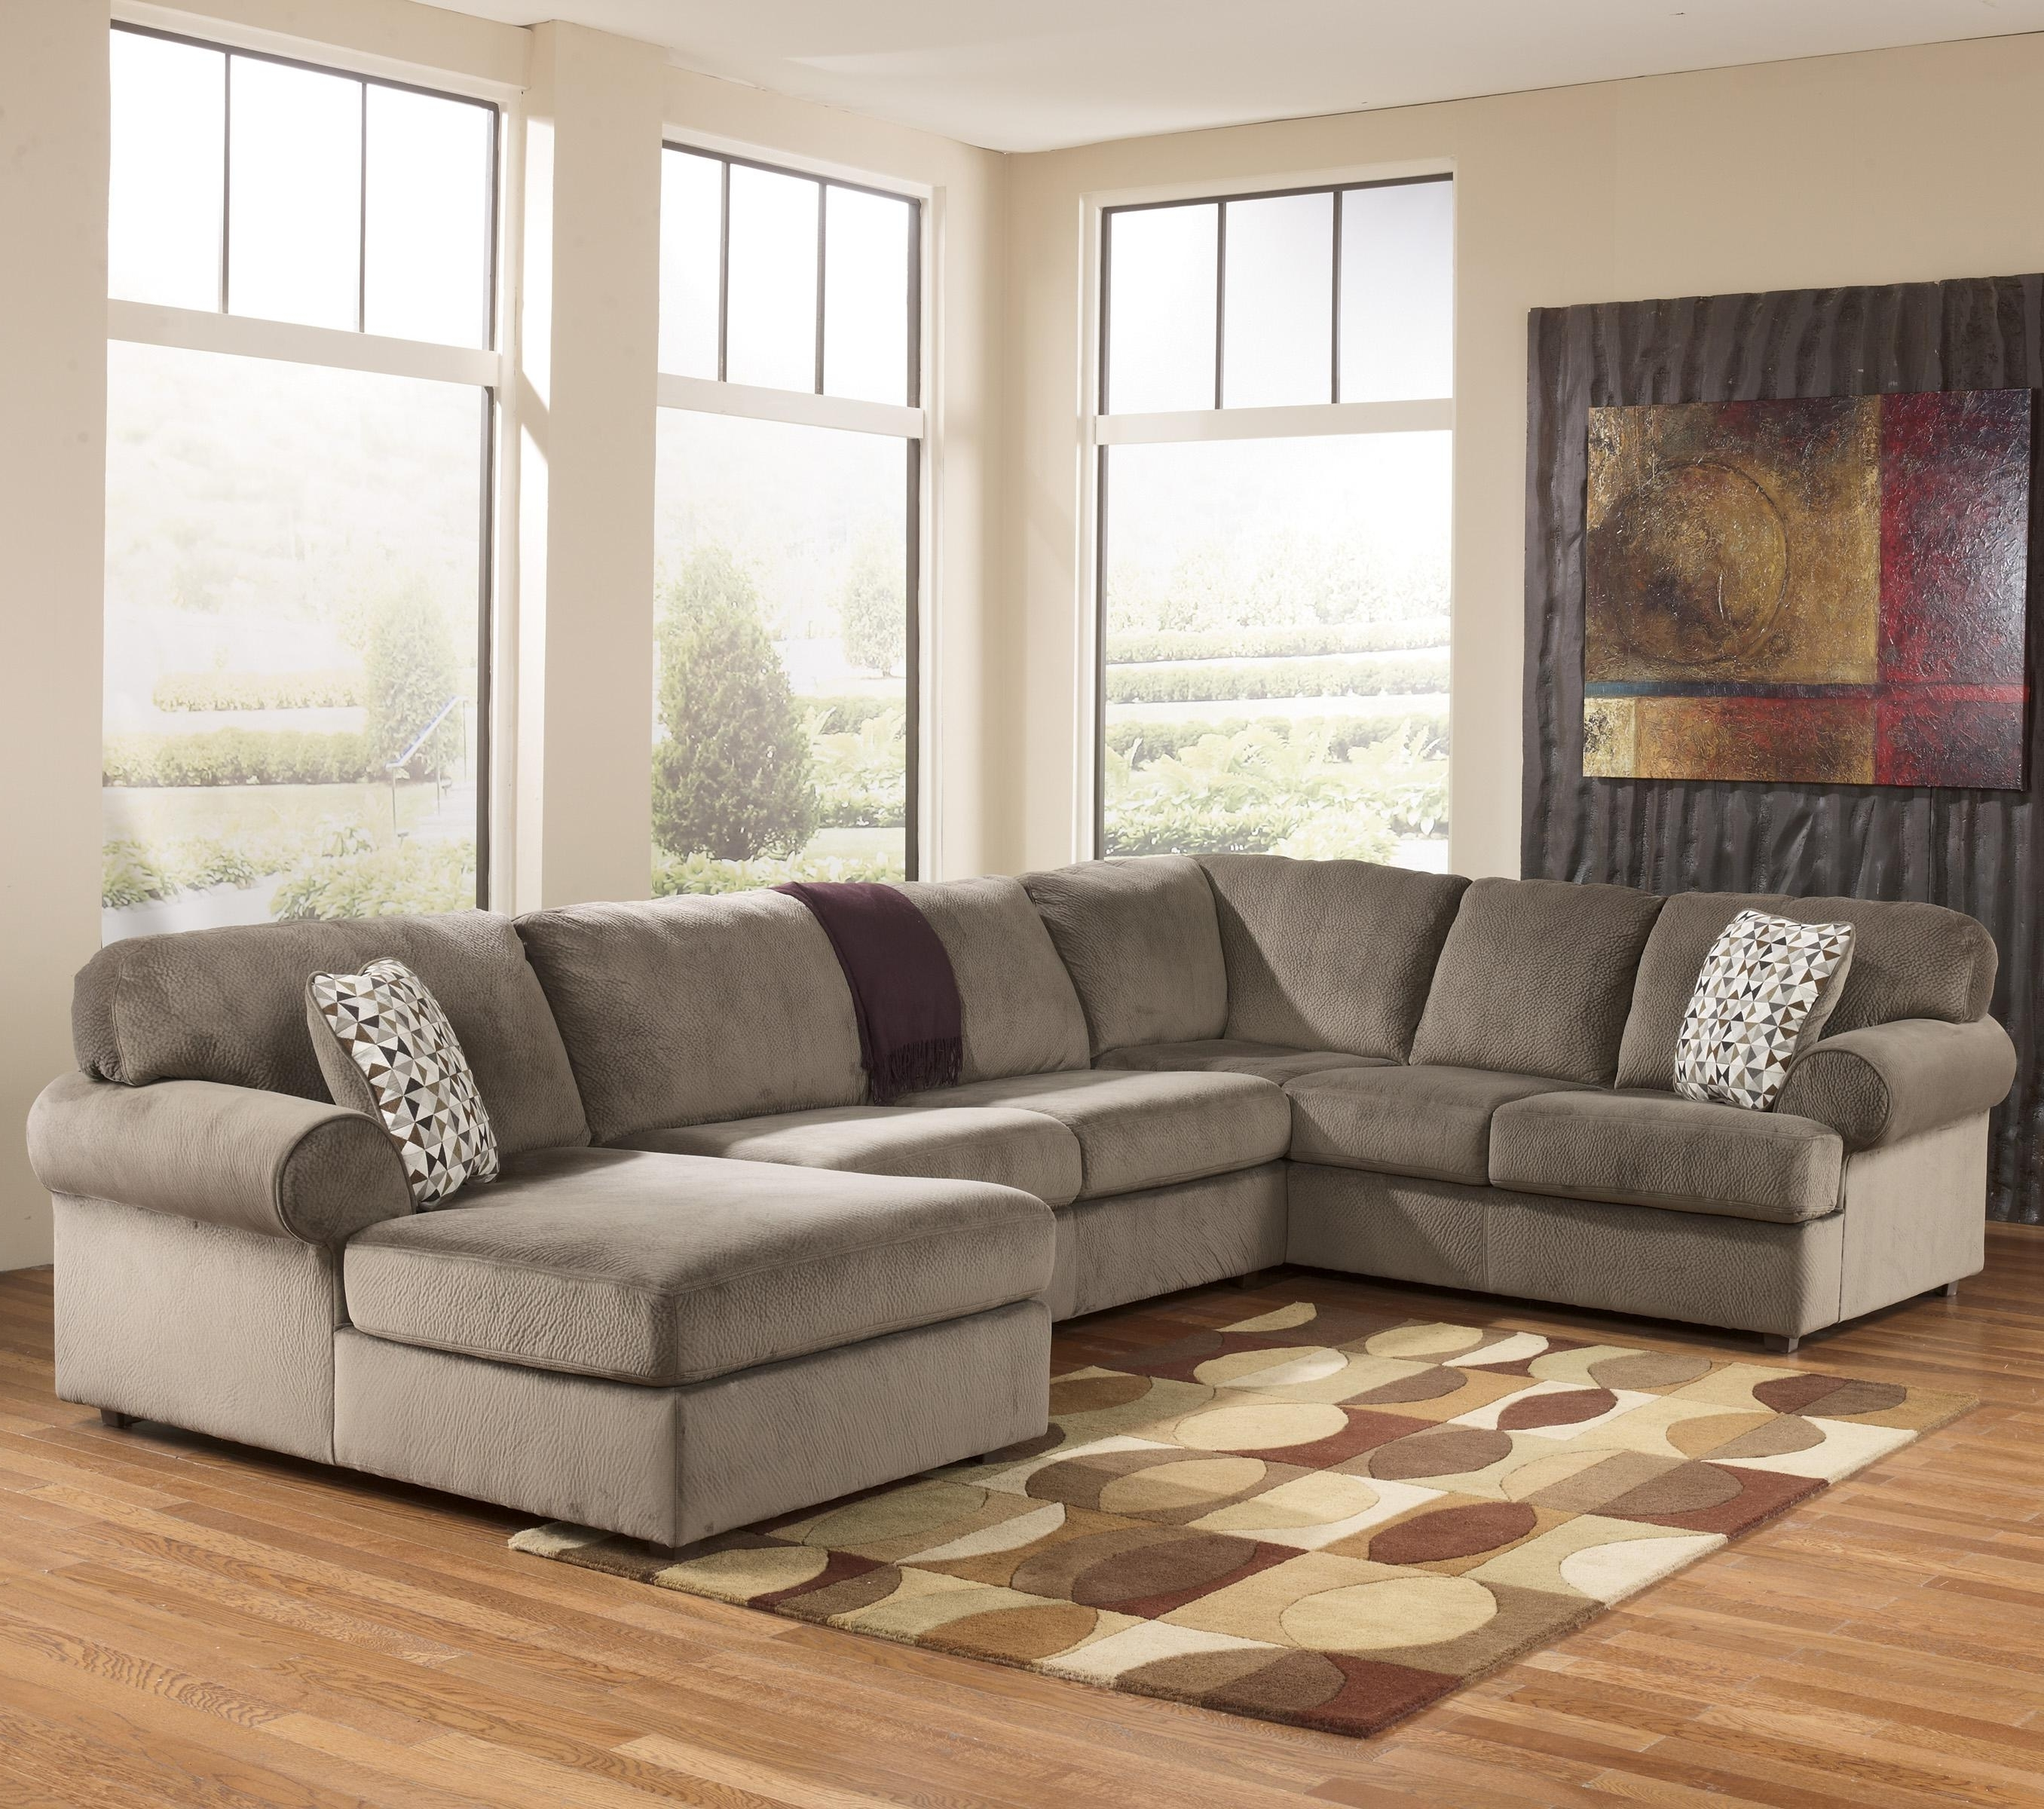 Widely Used Signature Designashley Jessa Place – Dune Casual Sectional With Regard To Jacksonville Nc Sectional Sofas (View 8 of 20)